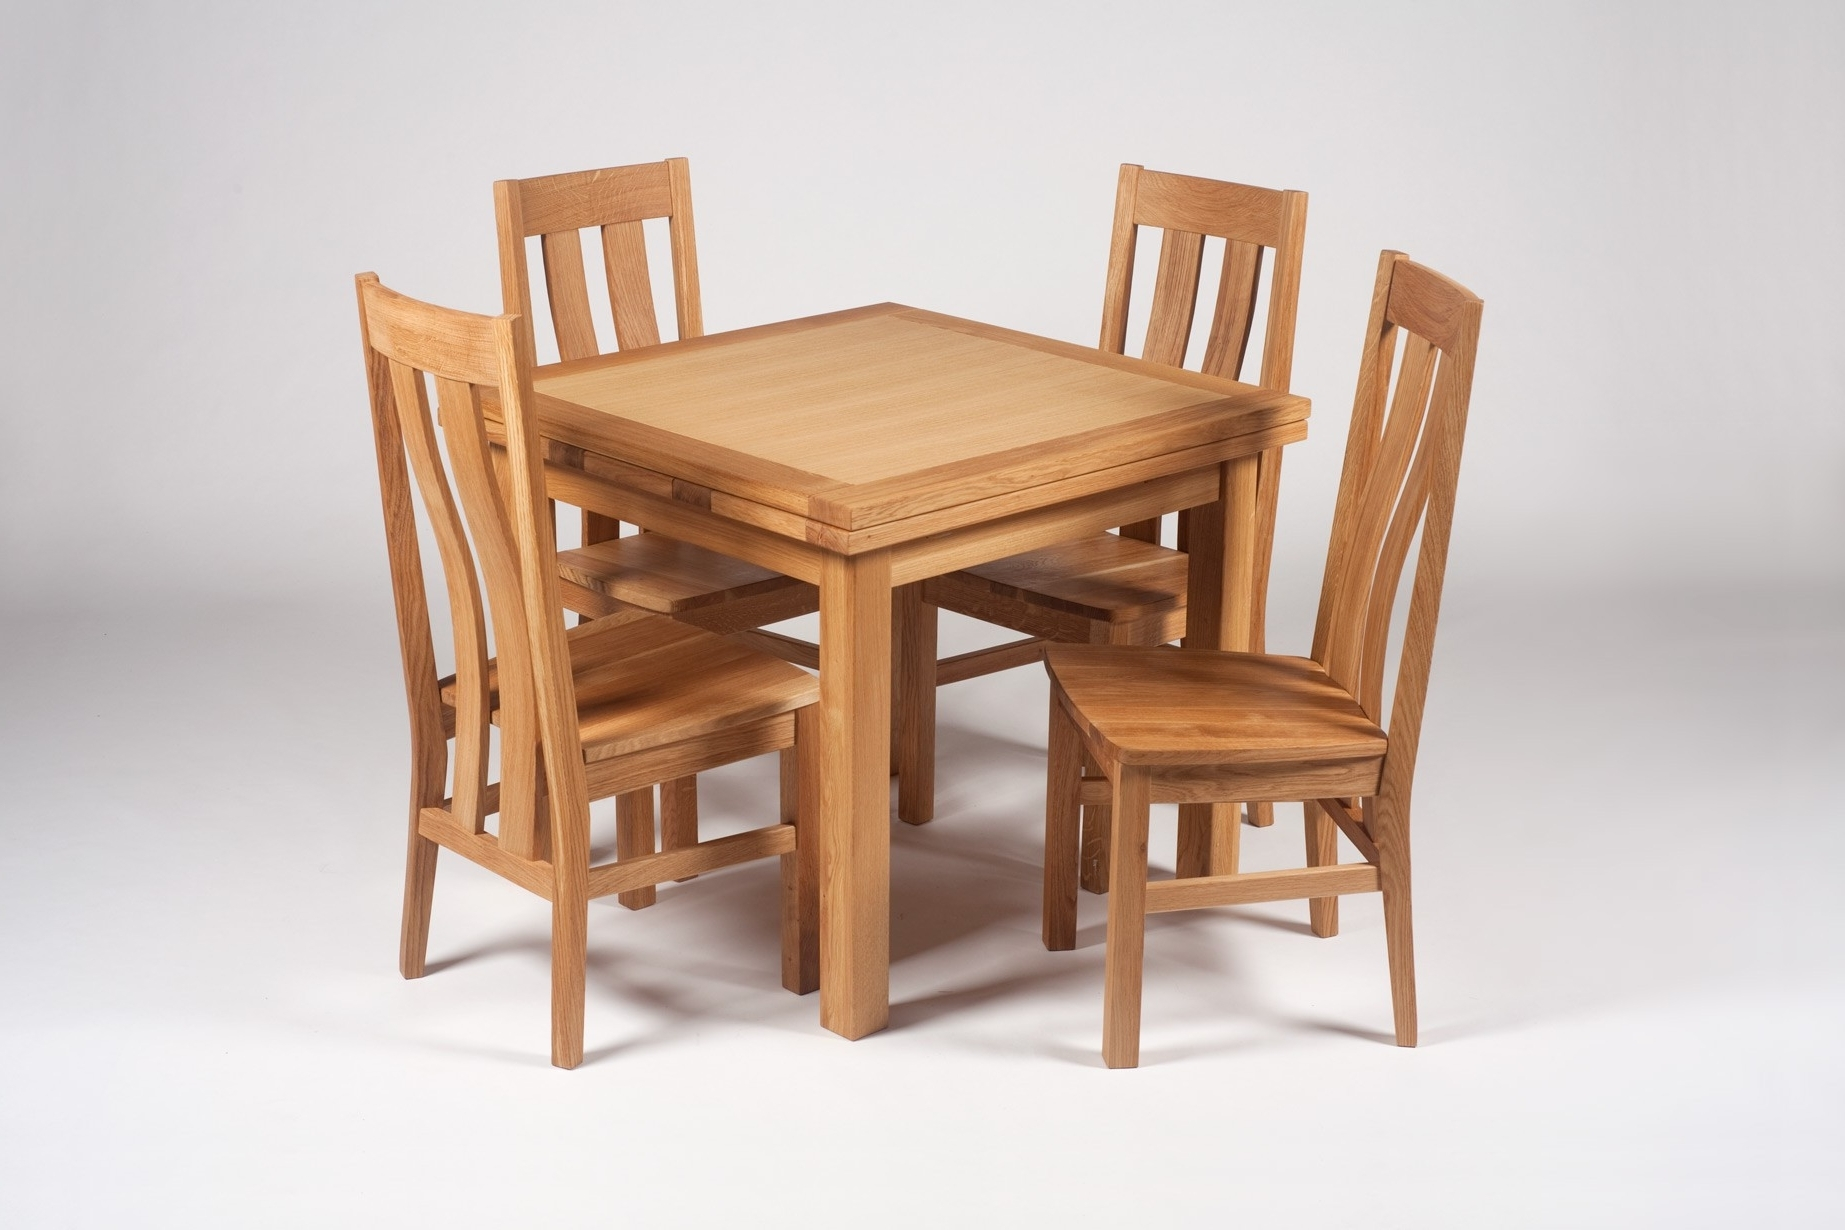 Small Extendable Dining Table Sets Intended For 2017 Small Extendable Dining Table – Furniture Ideas (View 18 of 25)